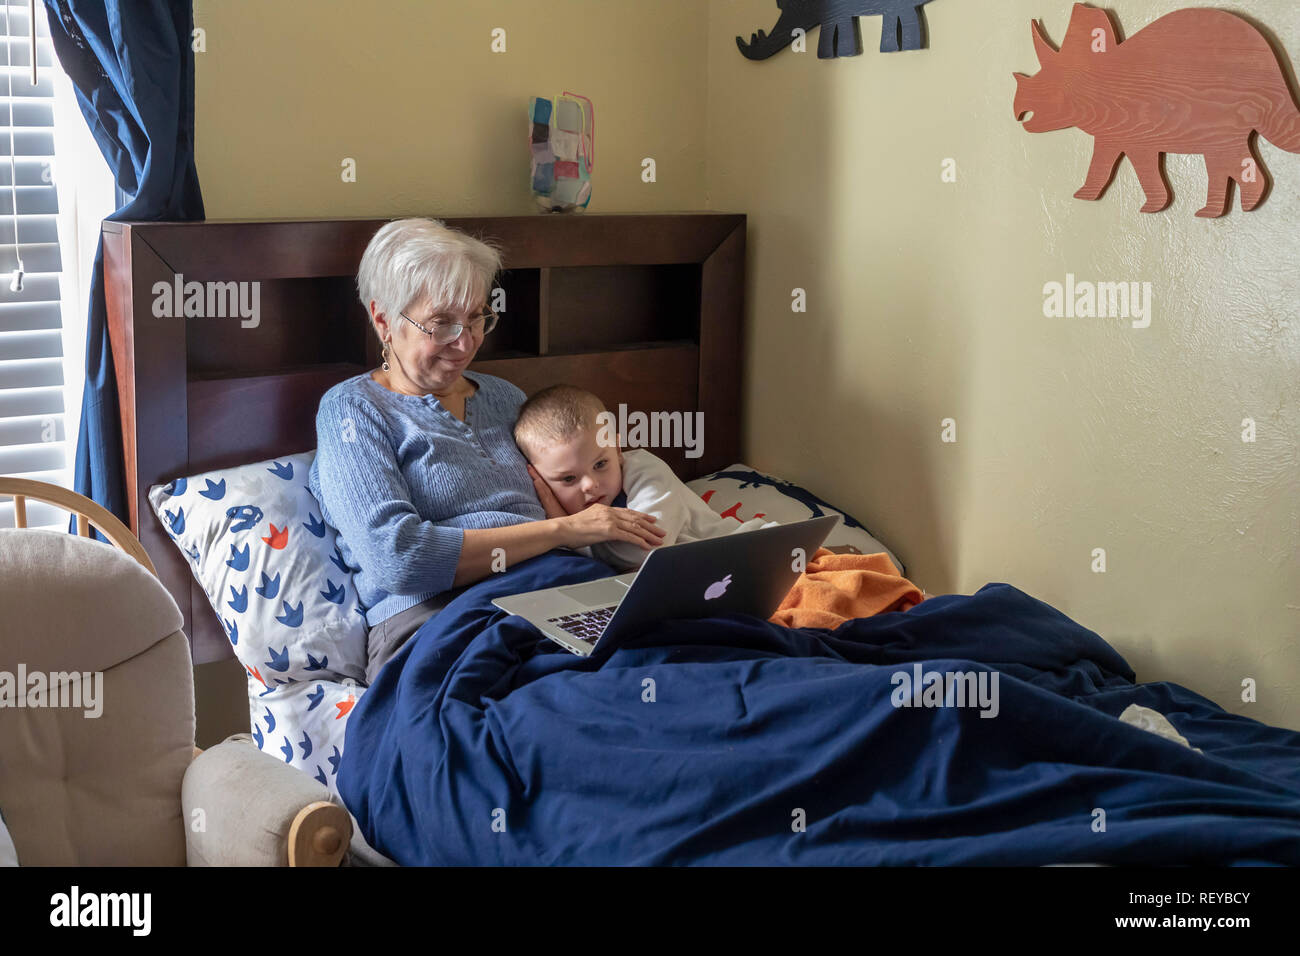 Denver, Colorado - Susan Newell, 70, and her four-year-old grandson, Adam Hjermstad Jr., look at pictures of animals on a laptop computer. - Stock Image